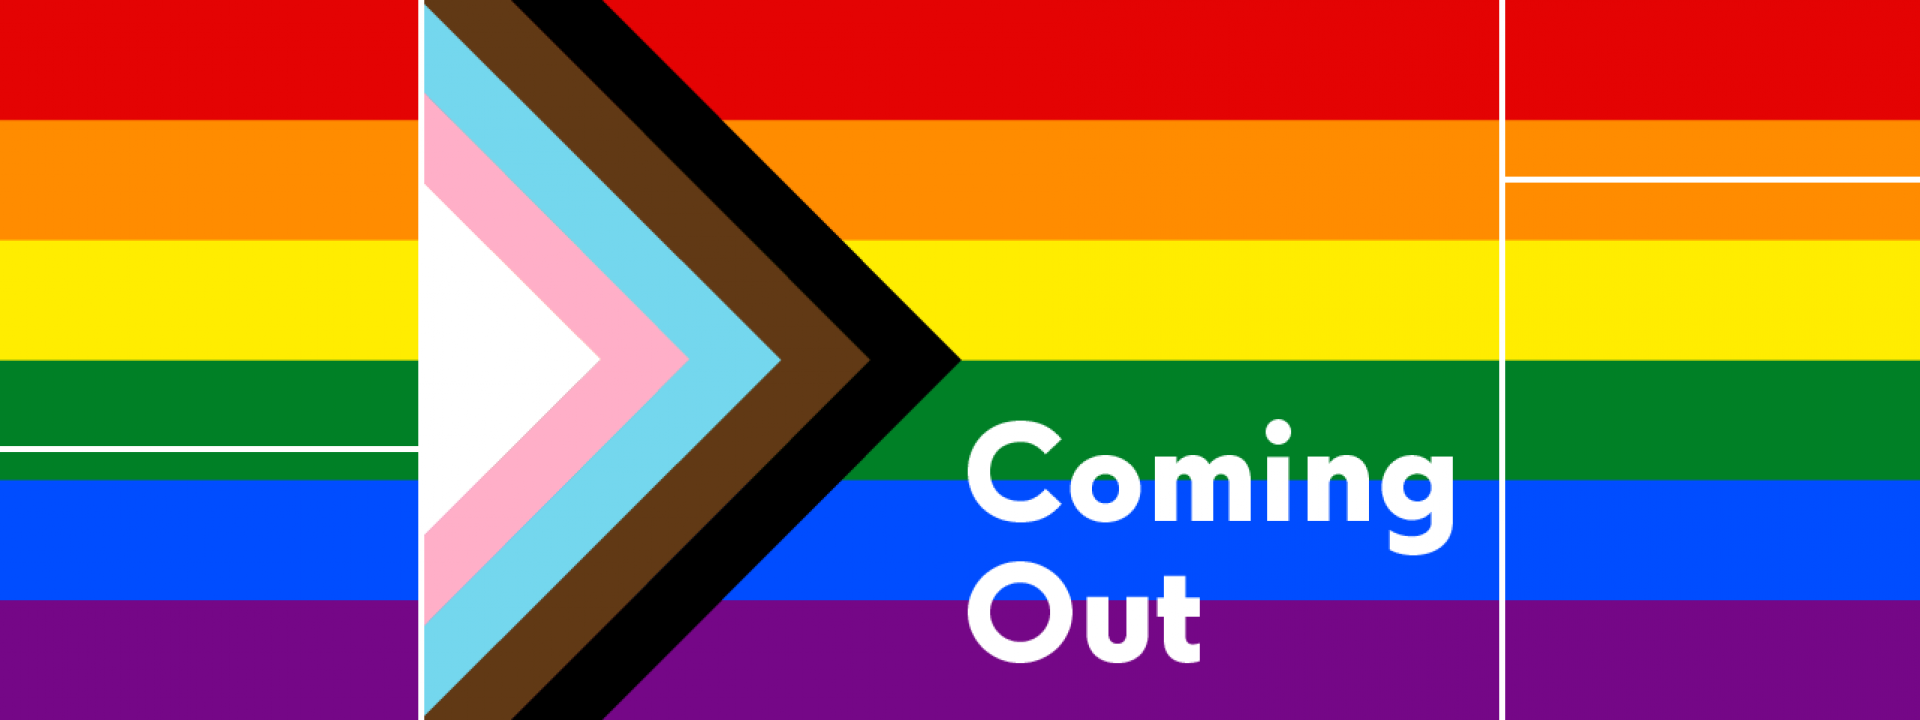 Athens Pride 2021: Coming Out - Εικόνα